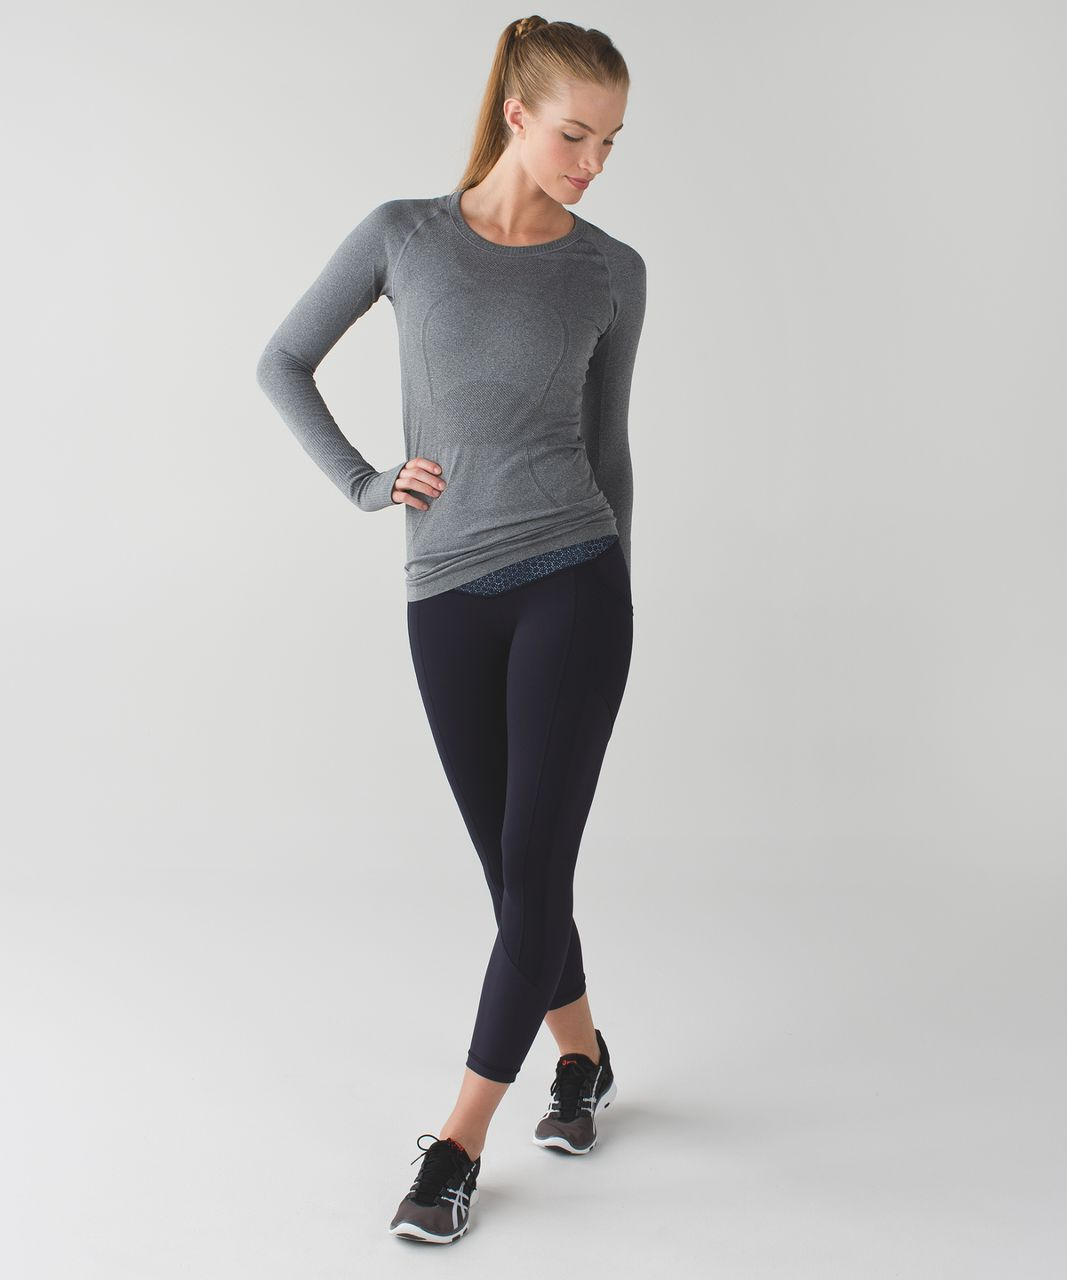 Lululemon All The Right Places Crop - Naval Blue / Star Pixel Aquamarine Naval Blue